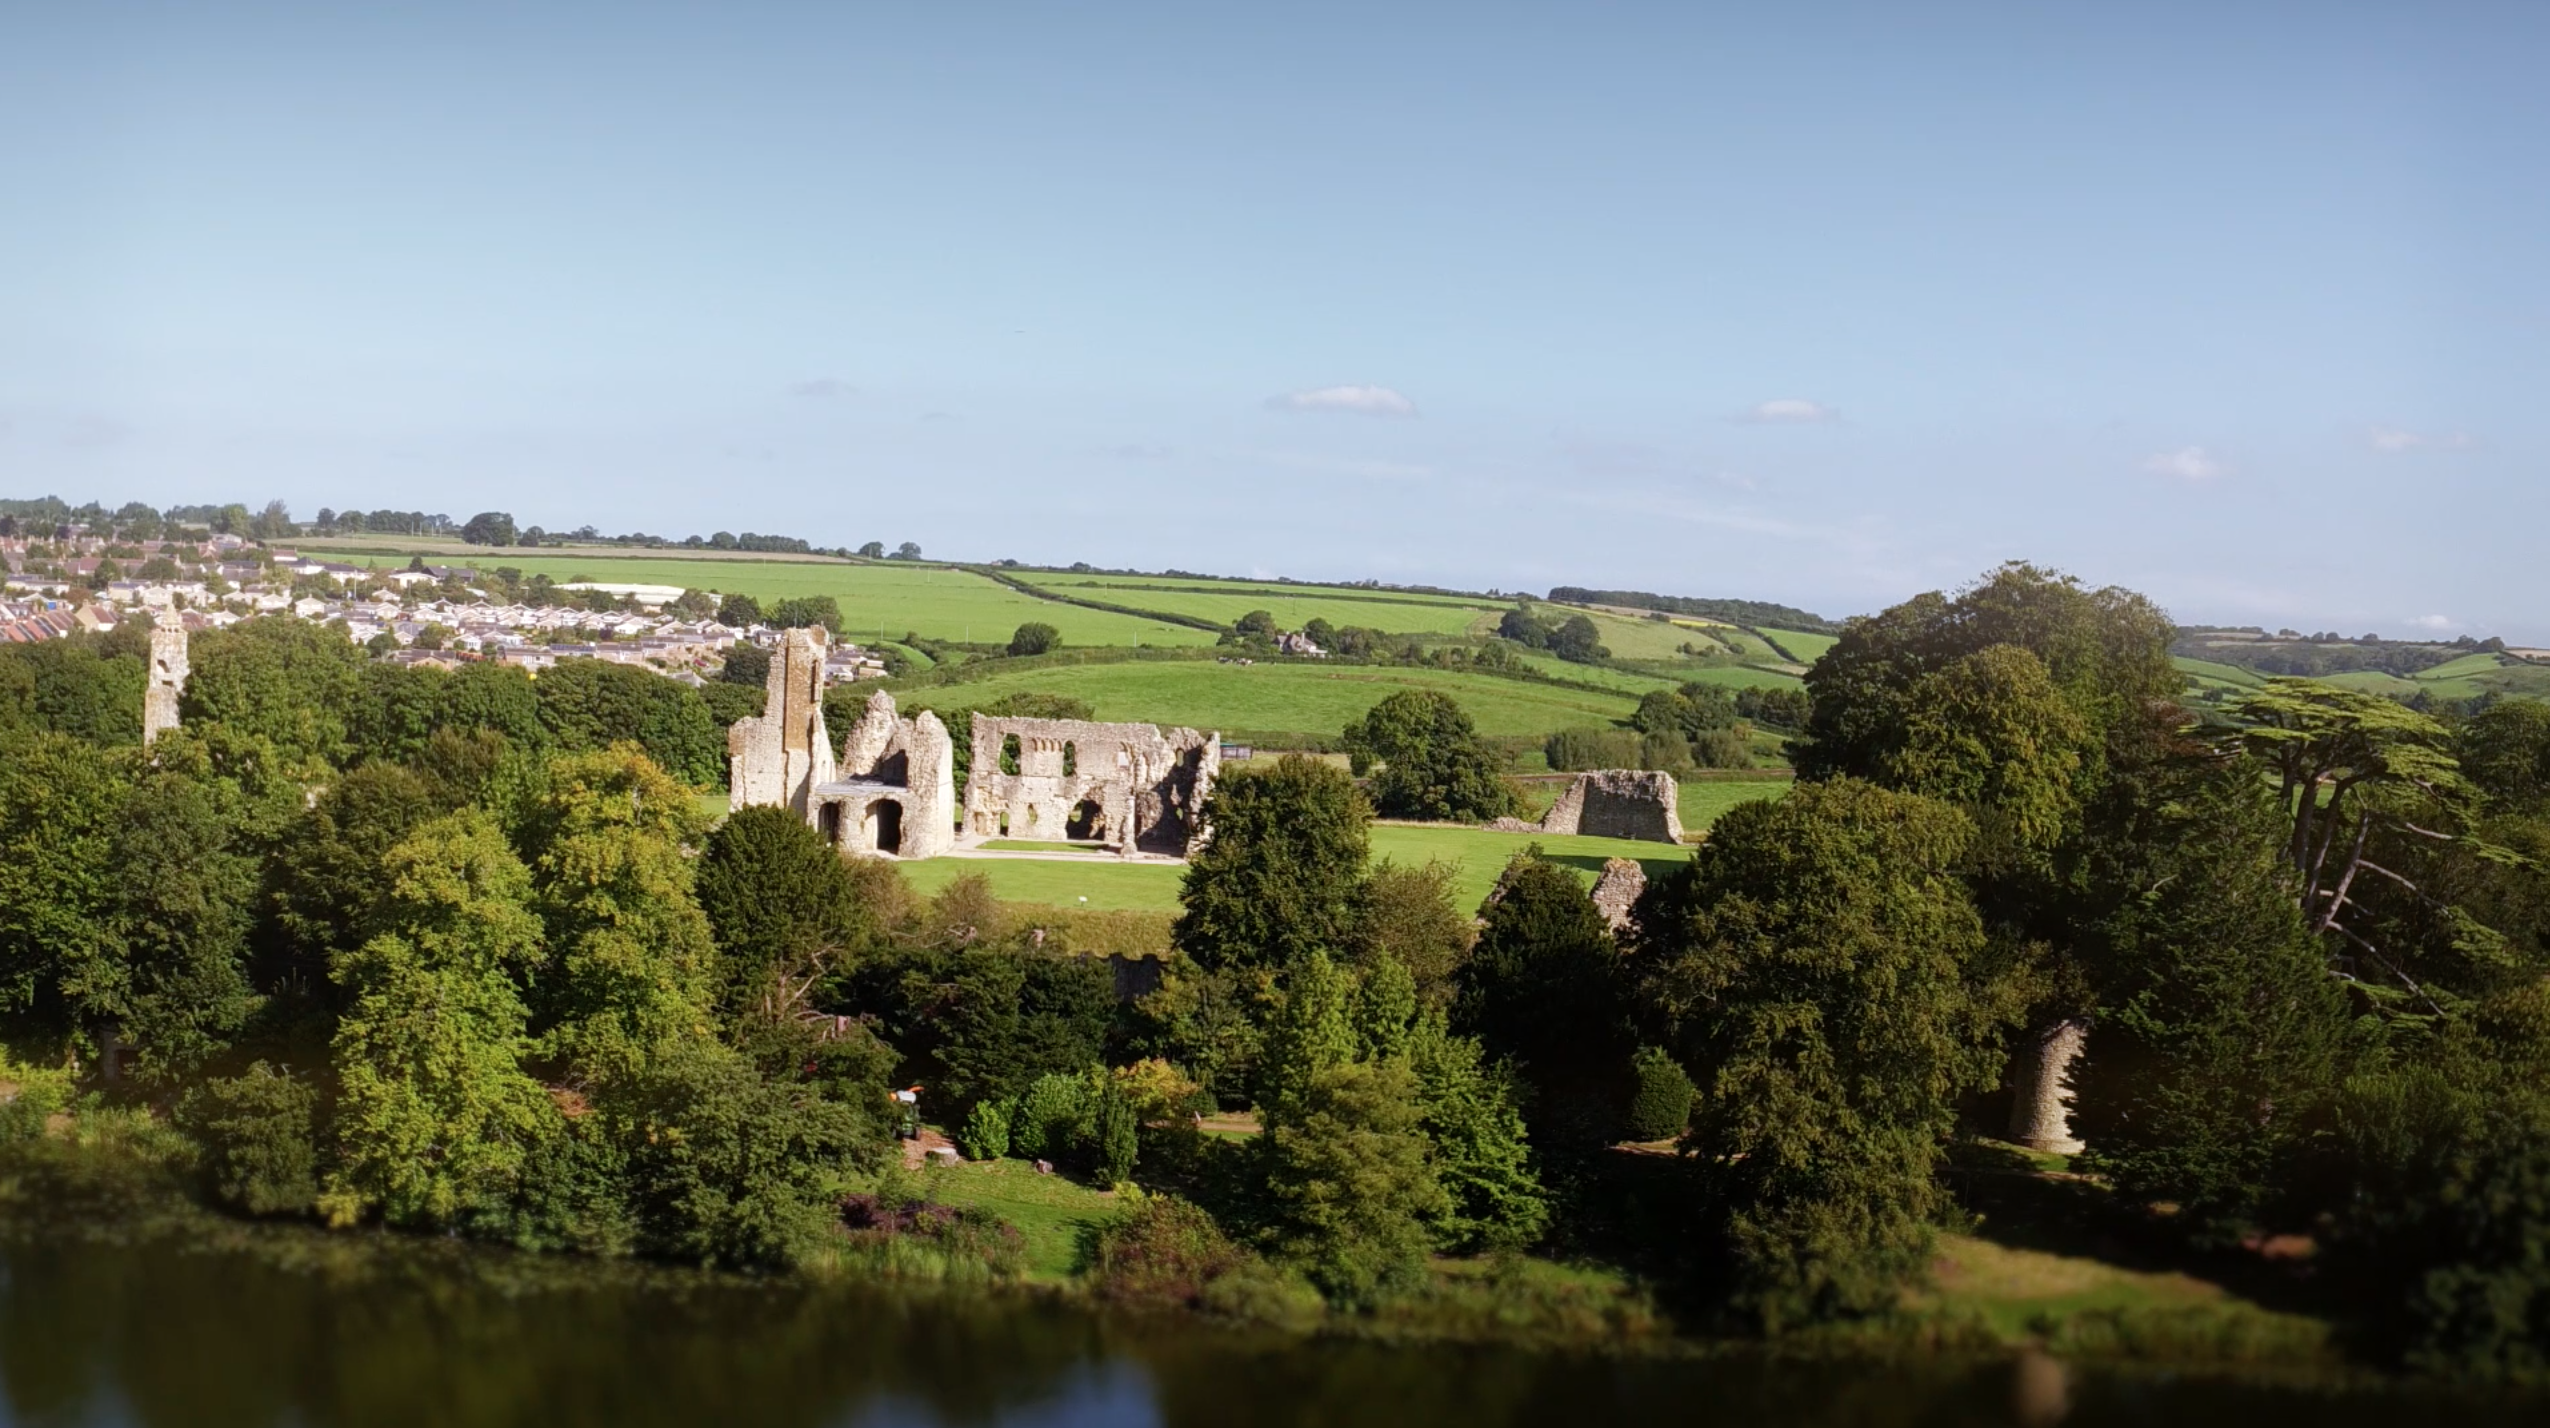 Visit Rural Dorset Promotional video South West. A view of a part of Sherborne and it's beautiful buildings